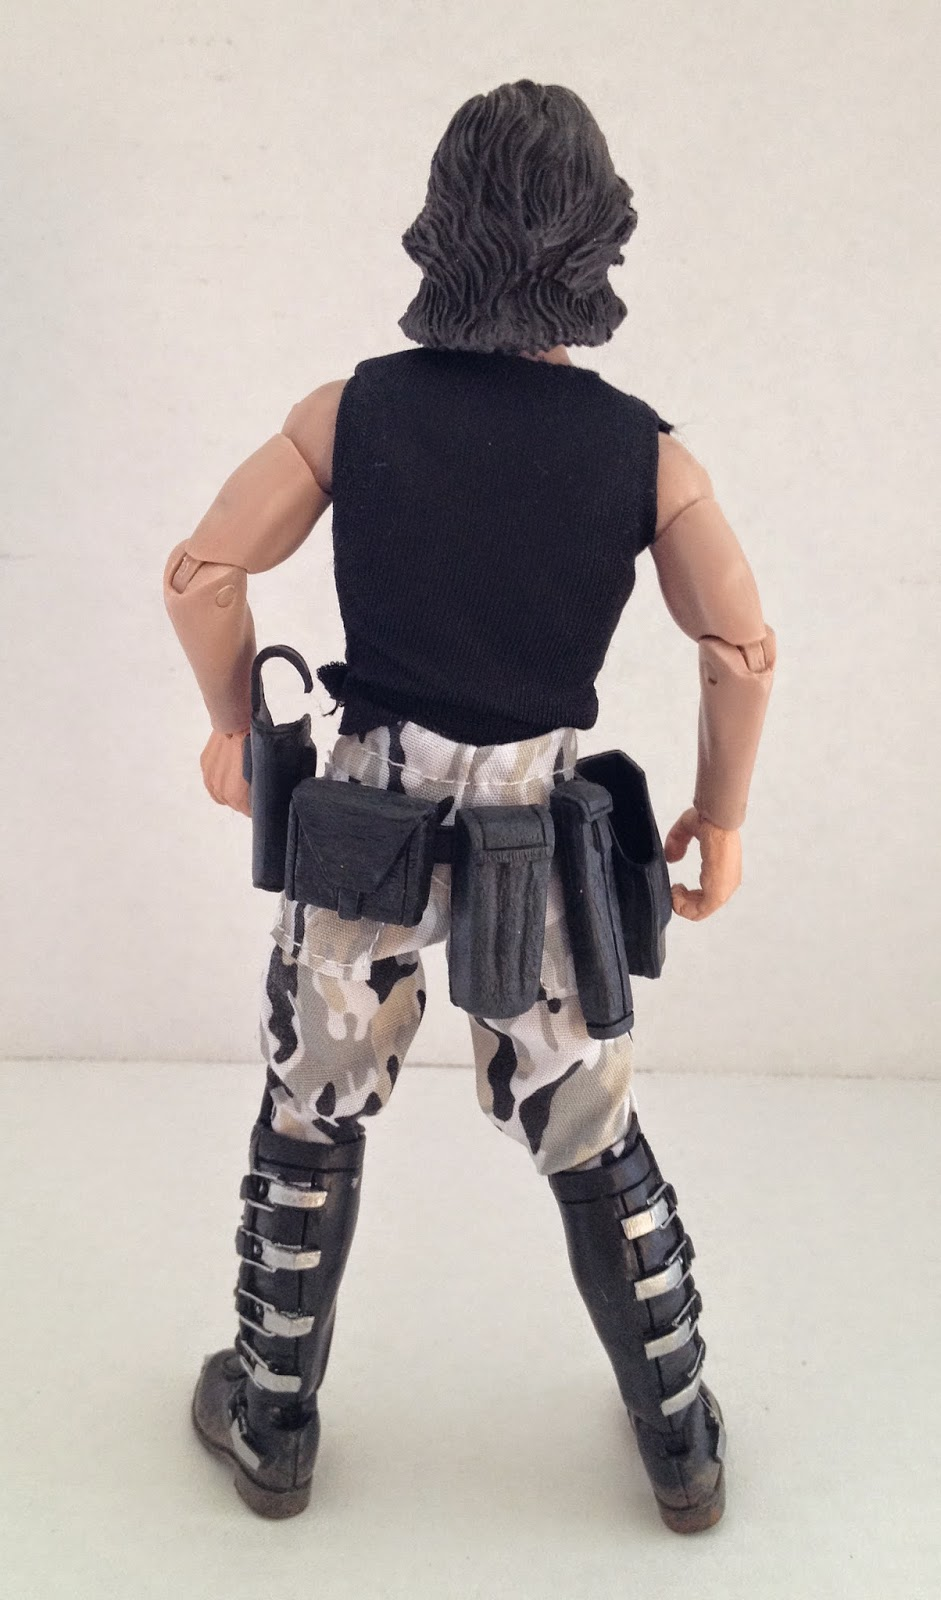 4f8da9054e4de As you can see in the photograph above, Snake's cobra tattoo is tampo  printed on his midriff. It's an essential detail and NECA's inclusion of it  ...